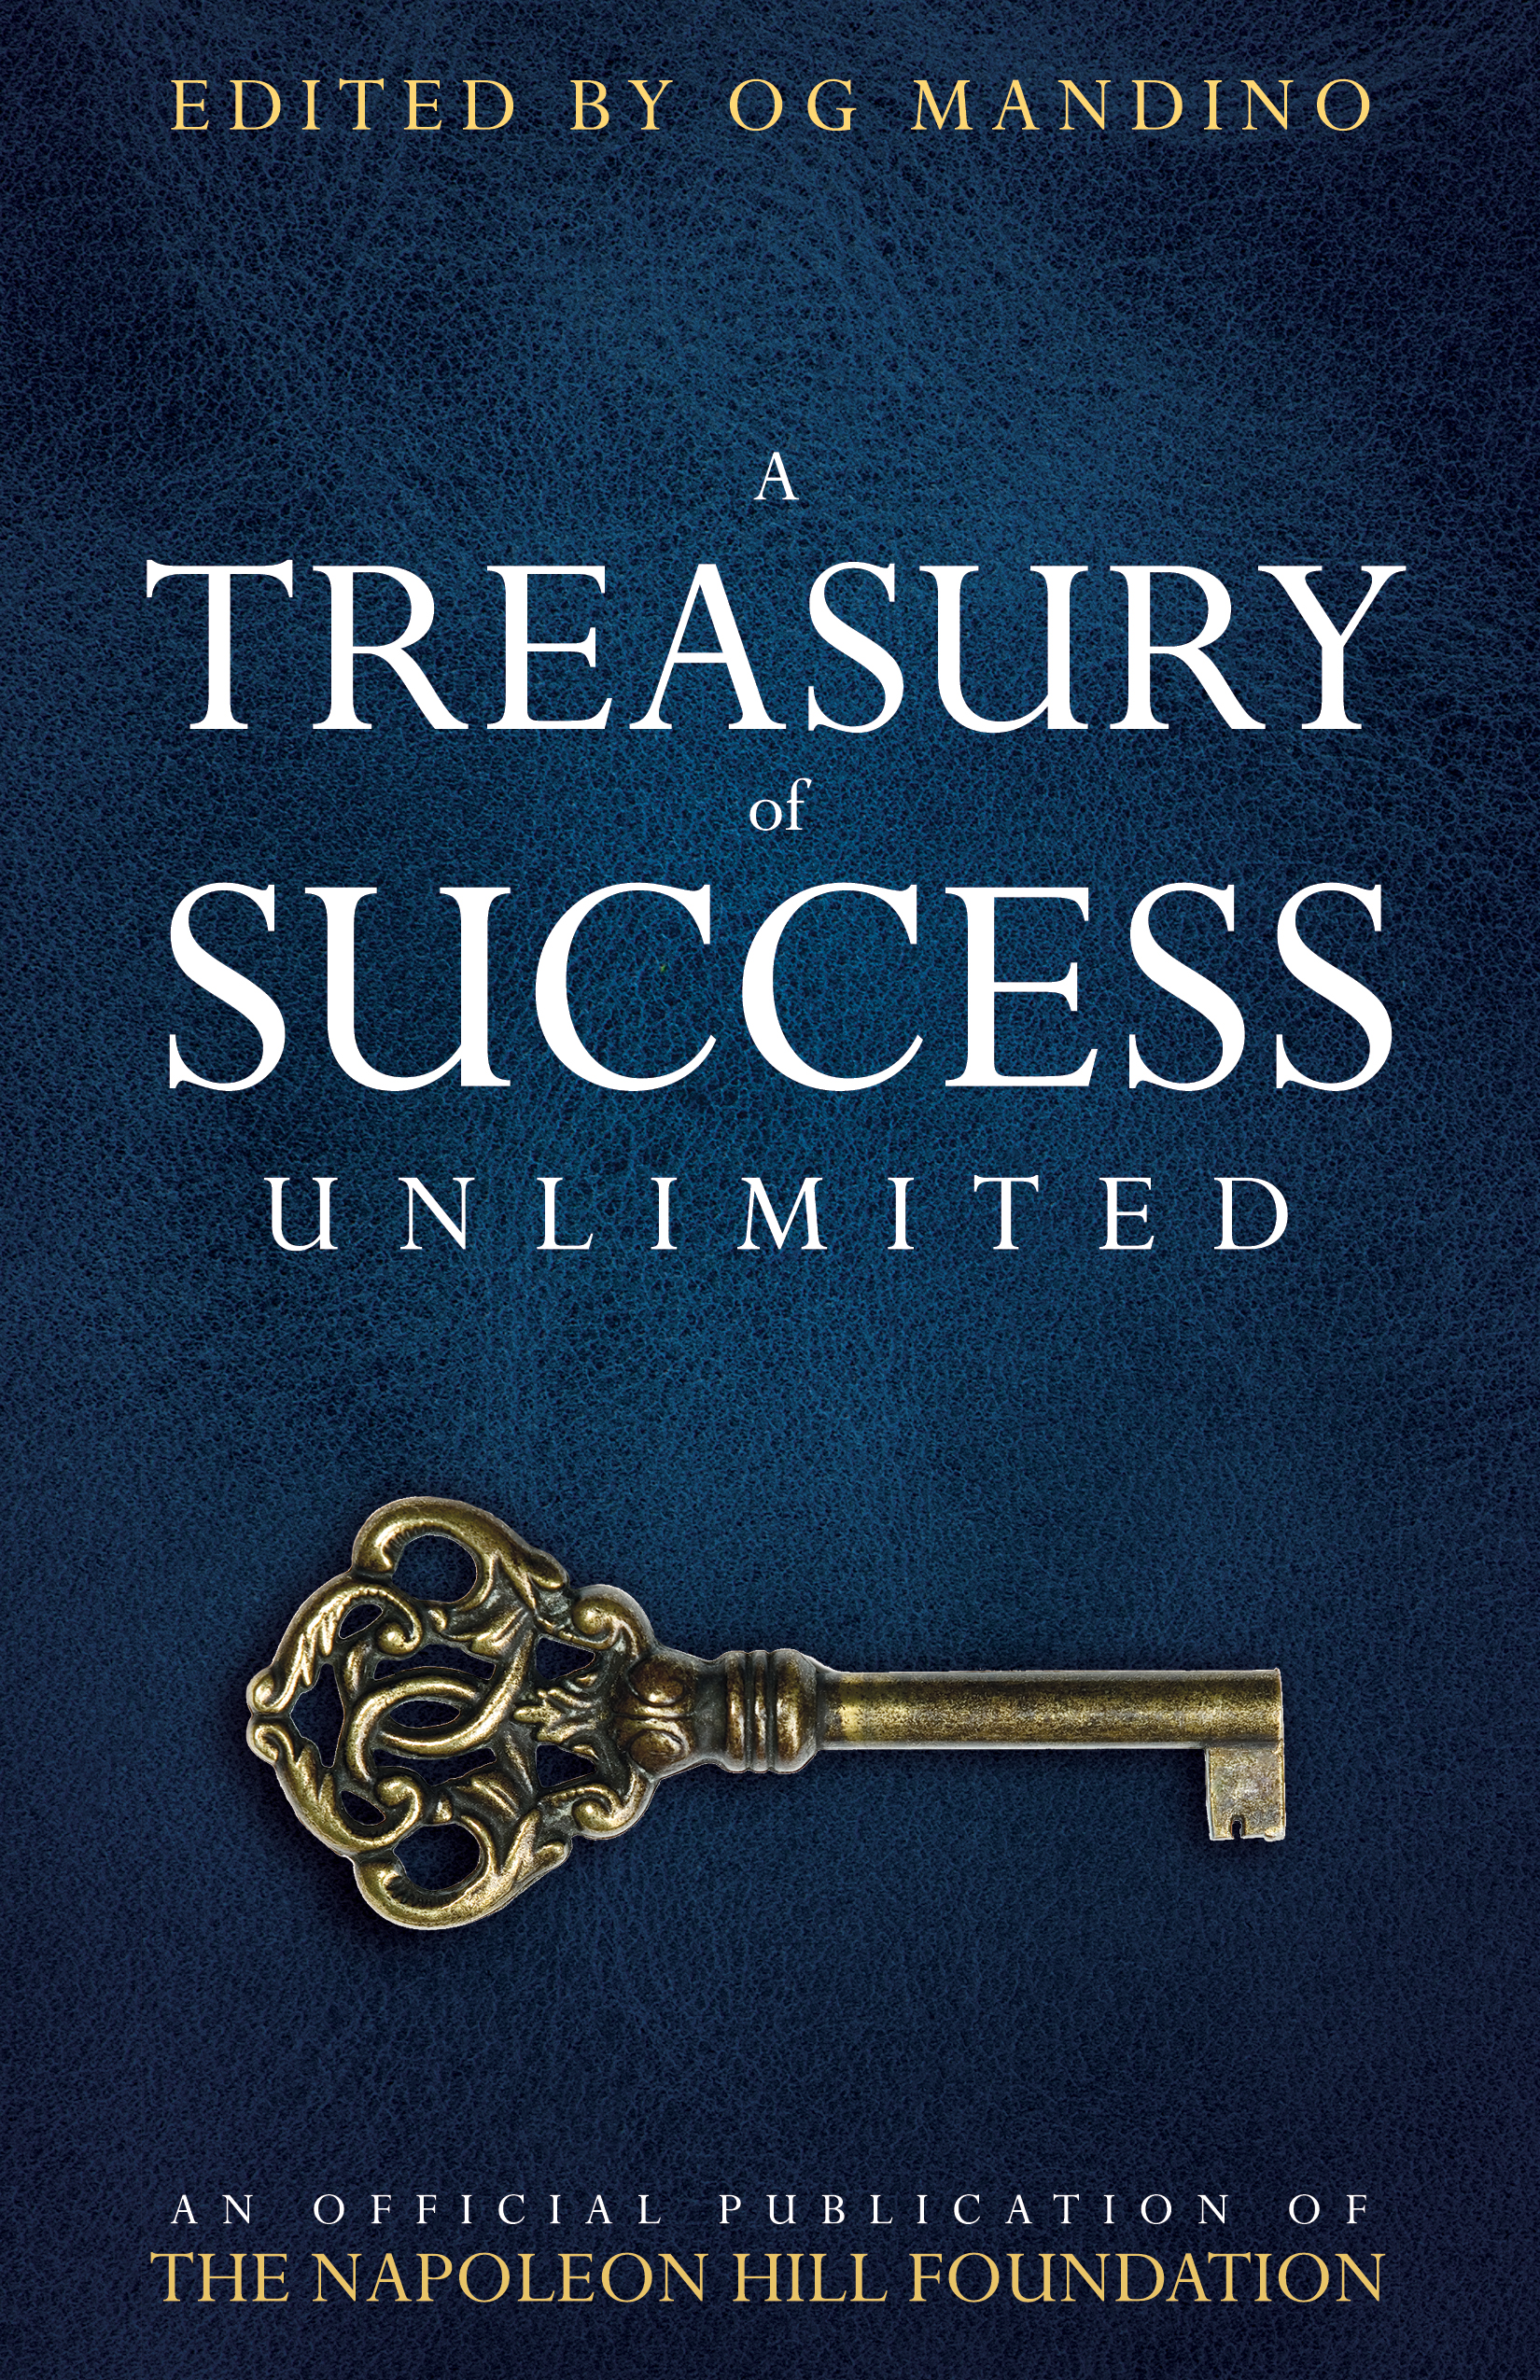 A Treasury of Success Unlimited - Edited by Og Mandino